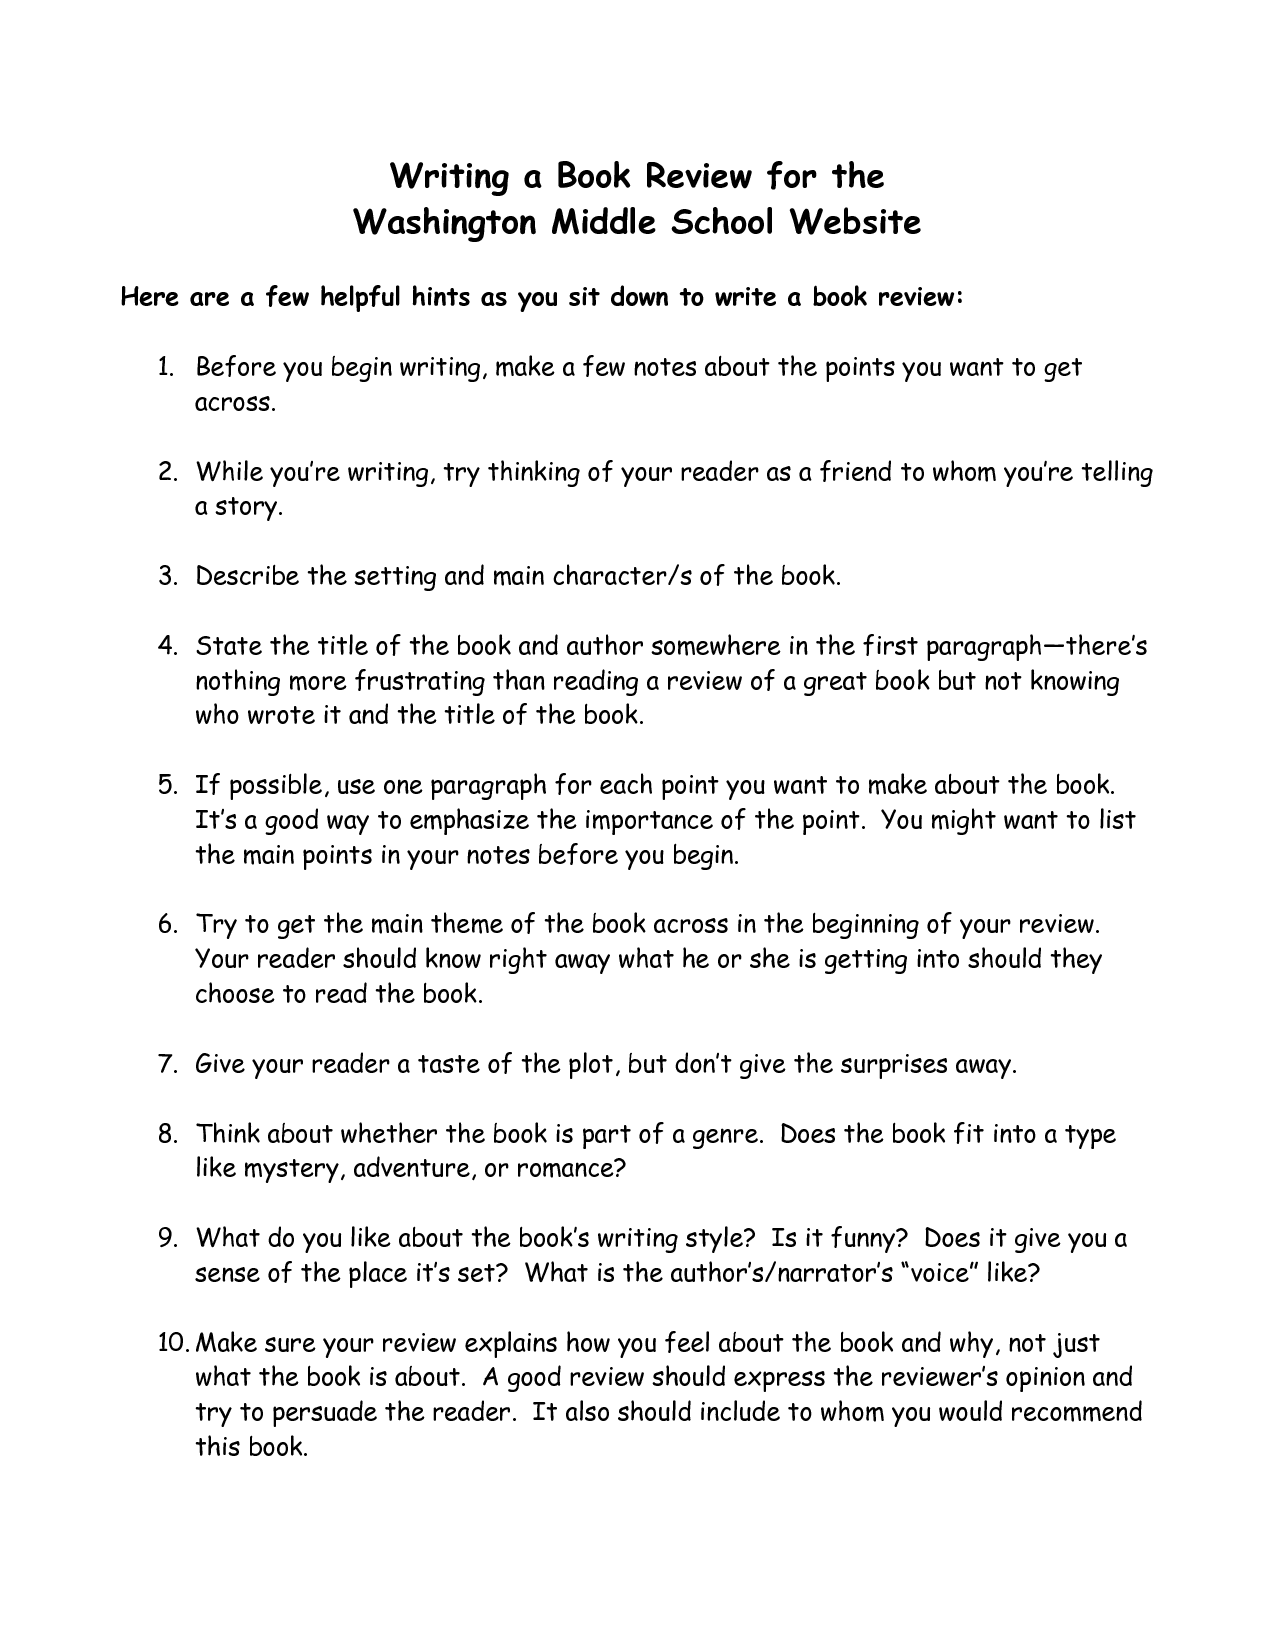 Book review essay writing useful phrases